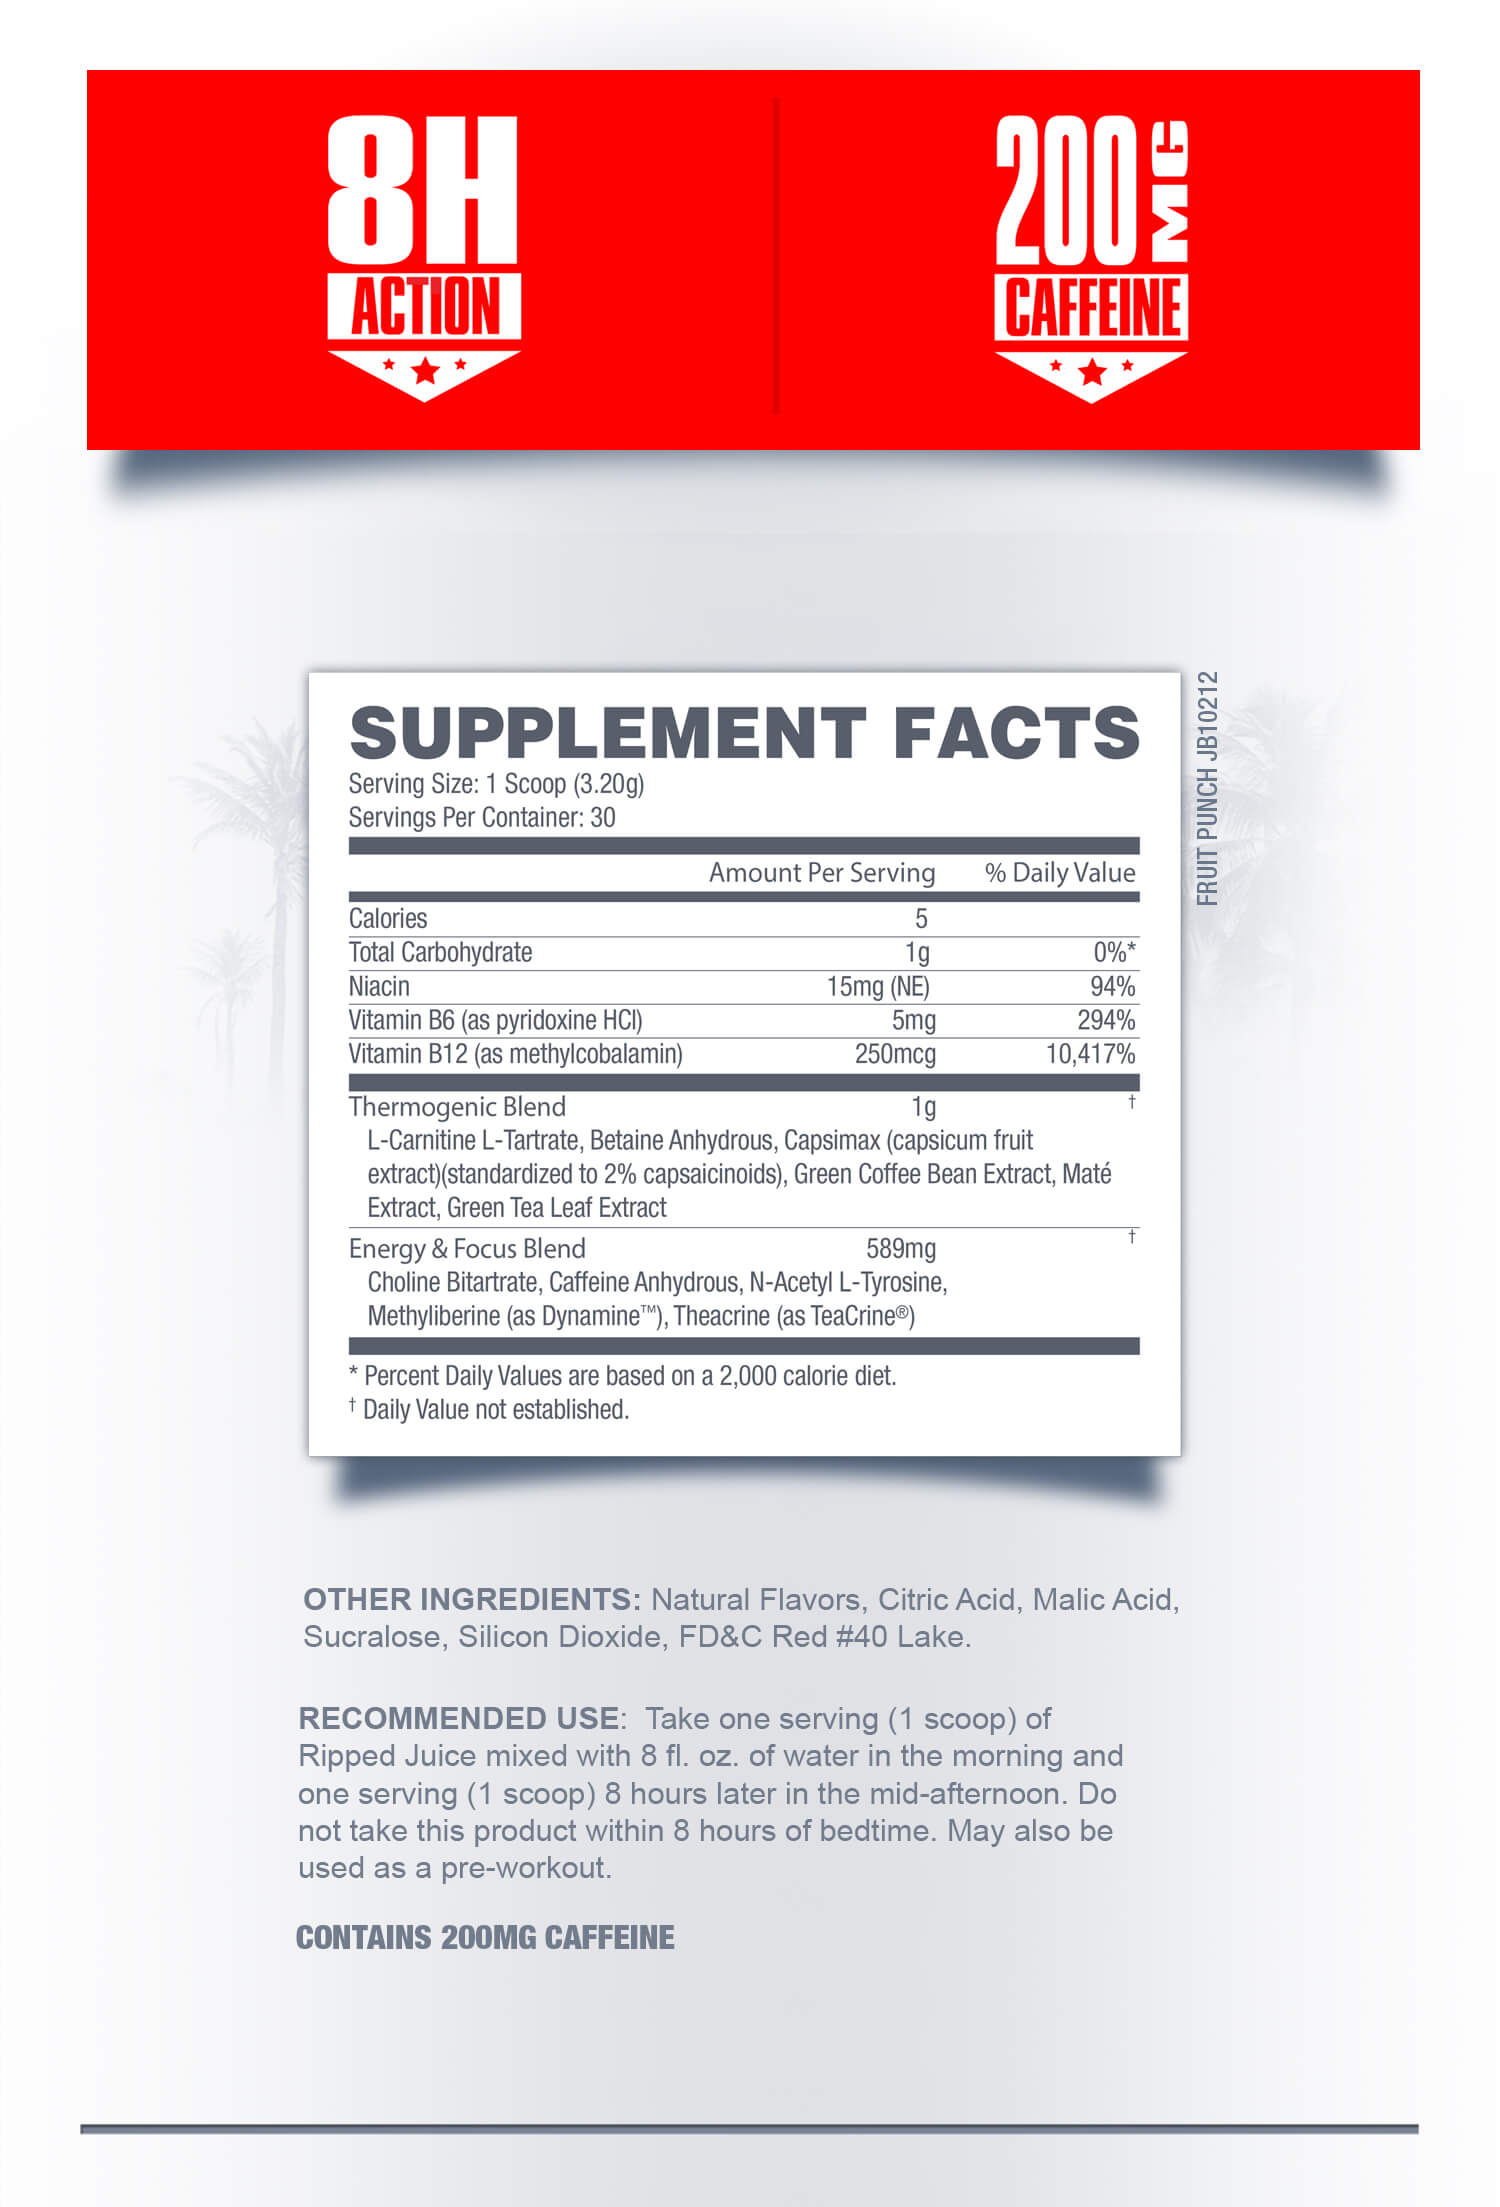 Ripped Juice Powder Supplement Facts - Betancourt Nutrition Weight Management